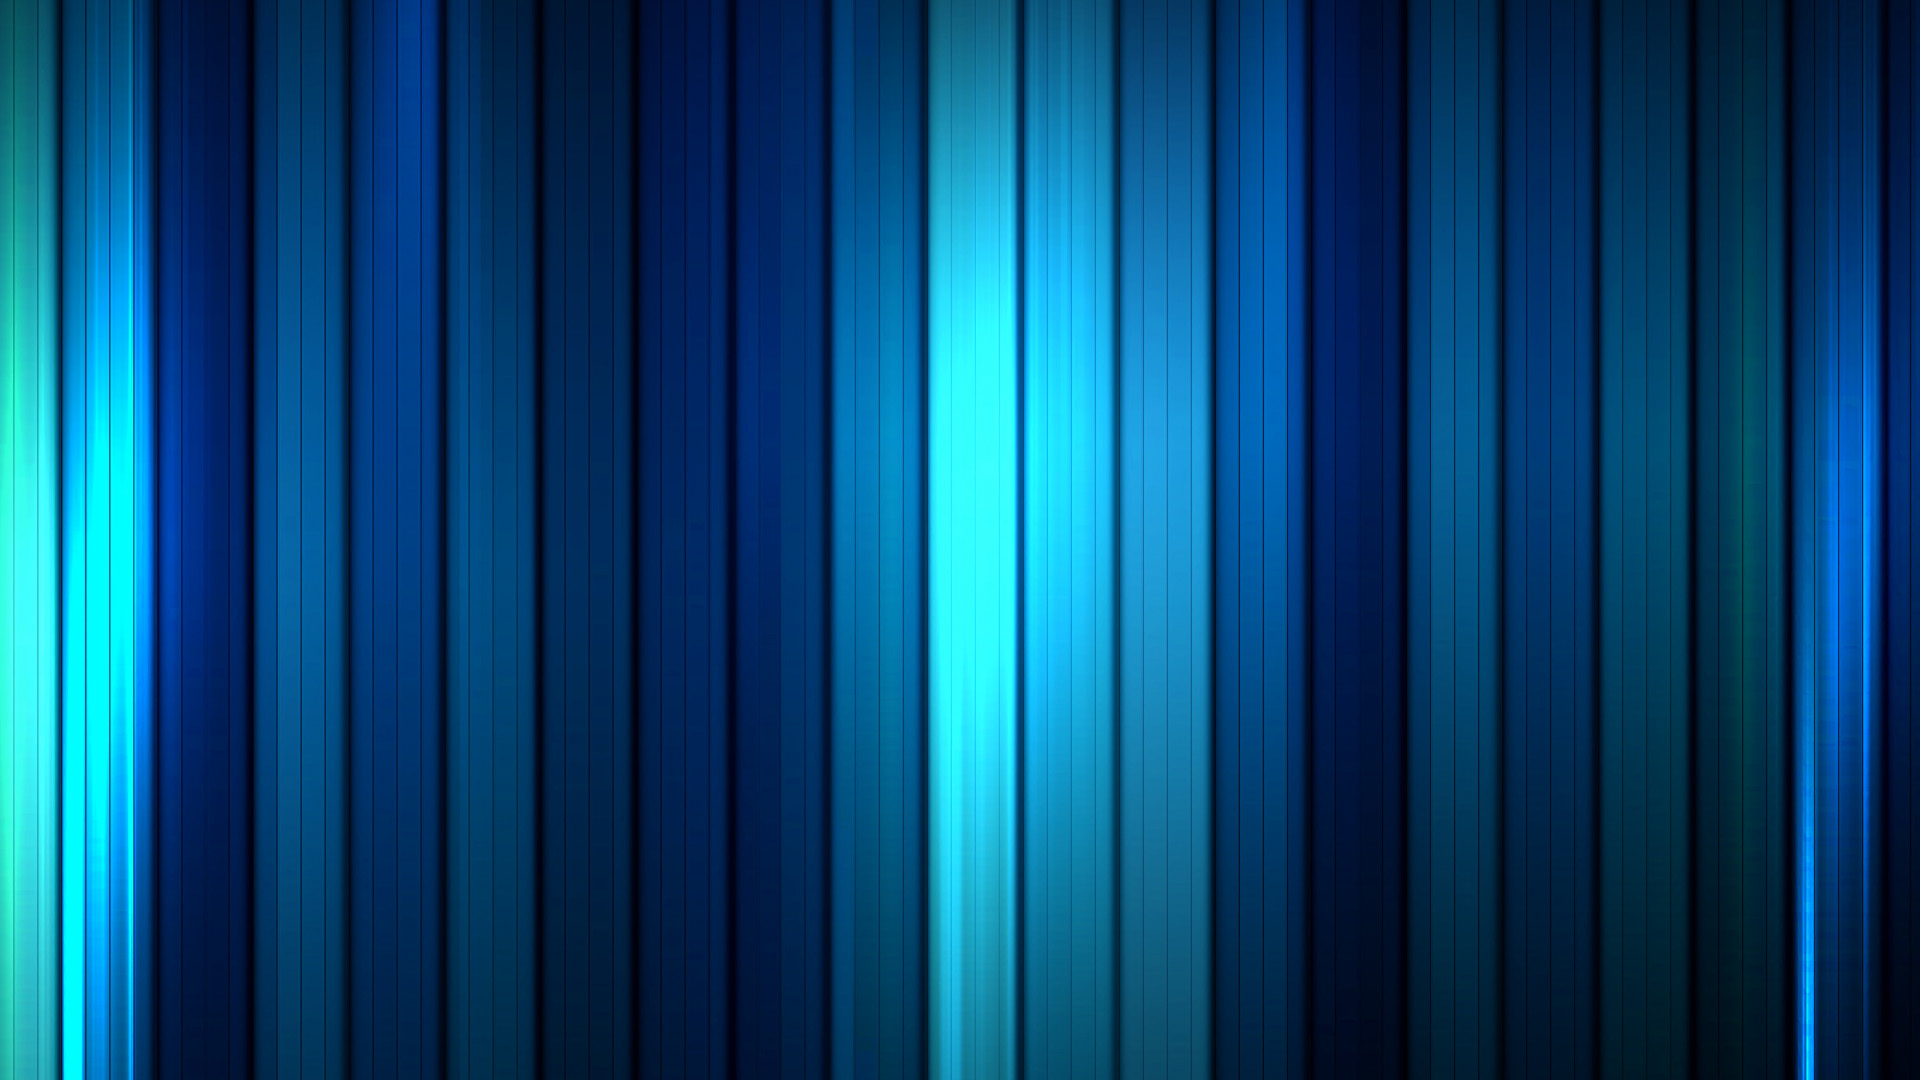 blue download hd backgrounds